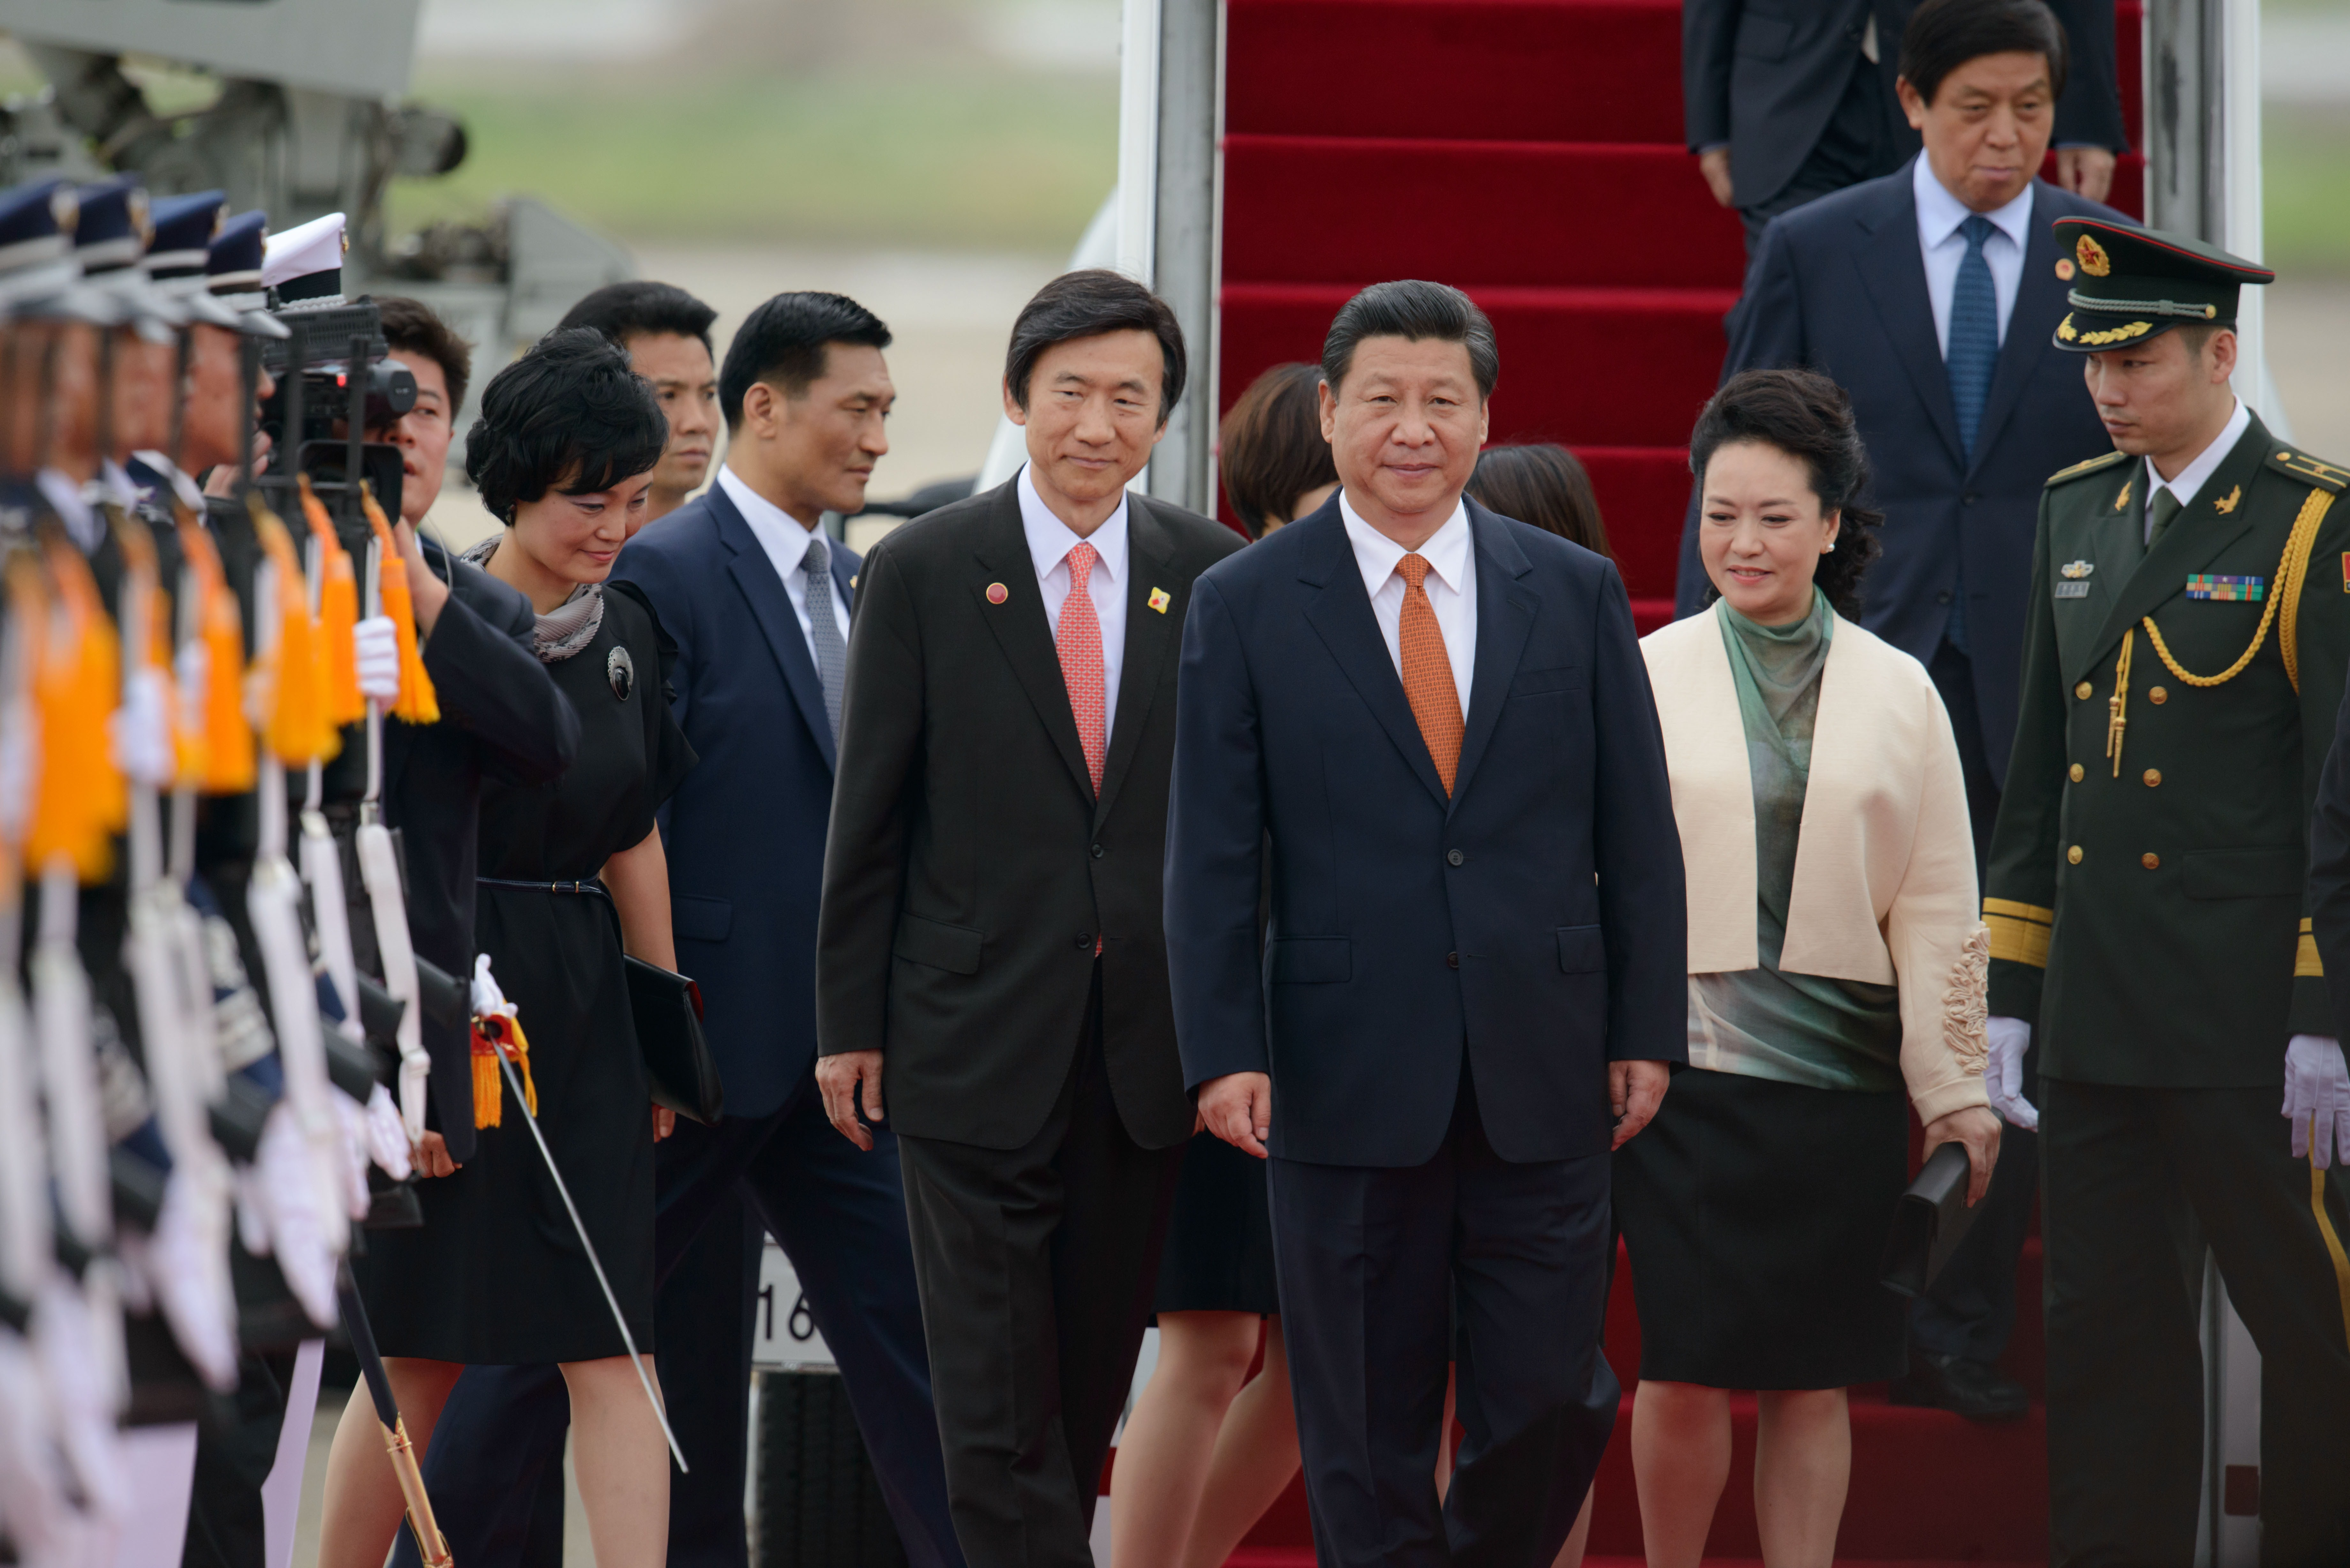 China's President Xi Jinping and his wife Peng Liyuan are welcomed upon arrival at Seoul Air Base on July 3, 2014